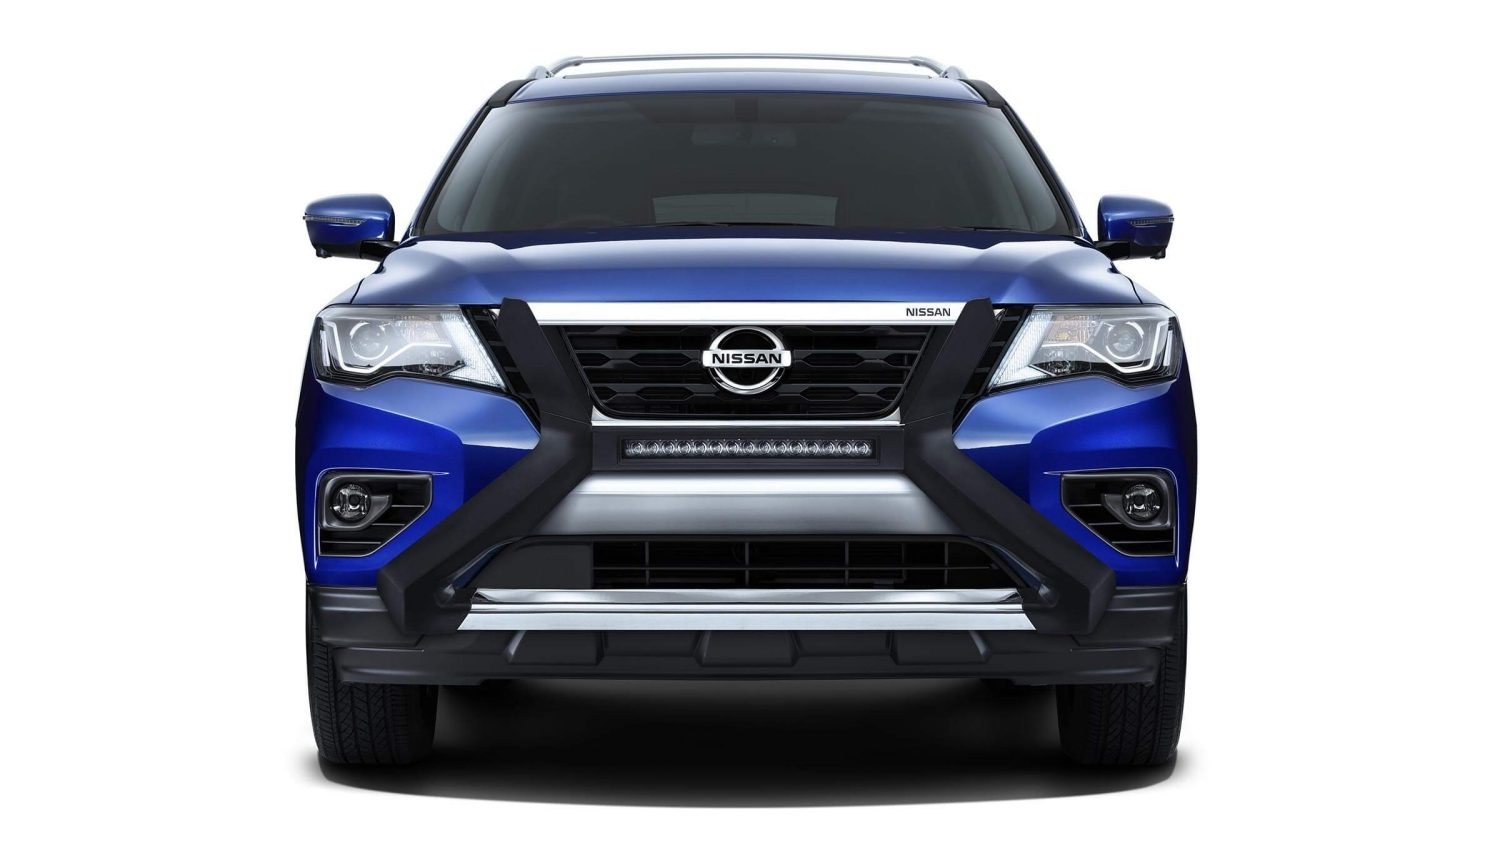 Nissan Pathfinder with light bar